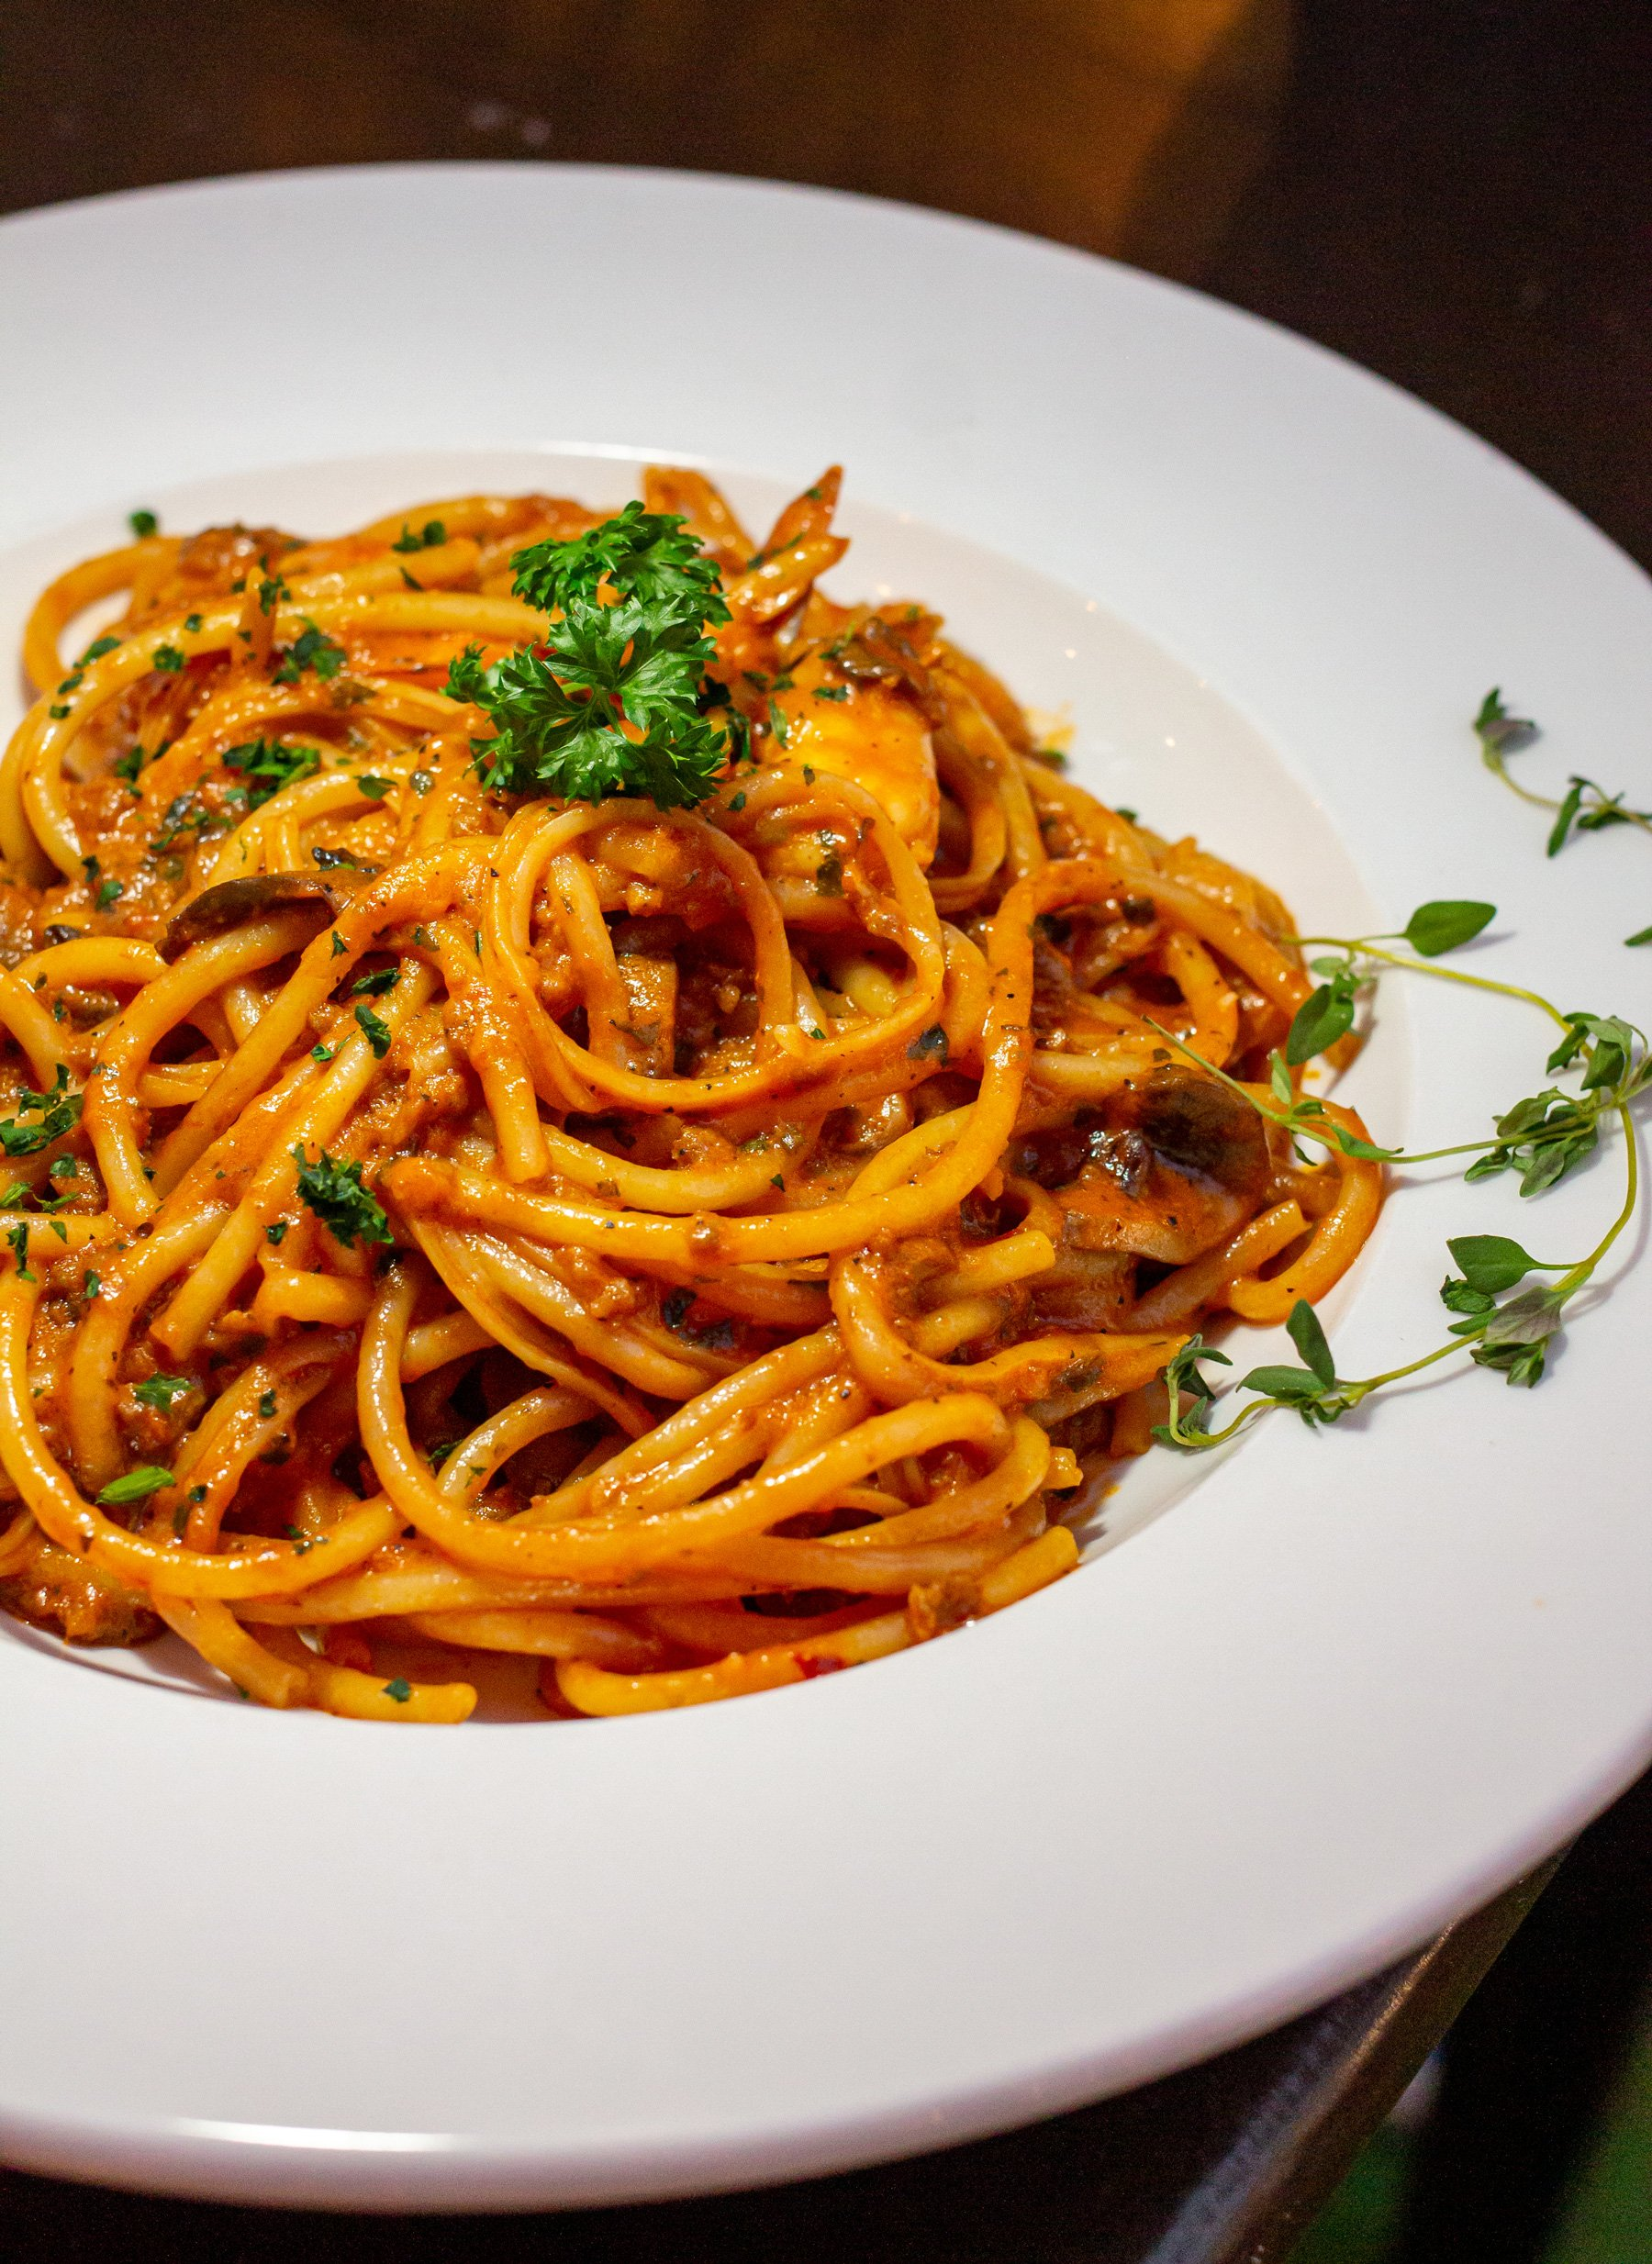 Pasta noodles in a red sauce with parsley on top.